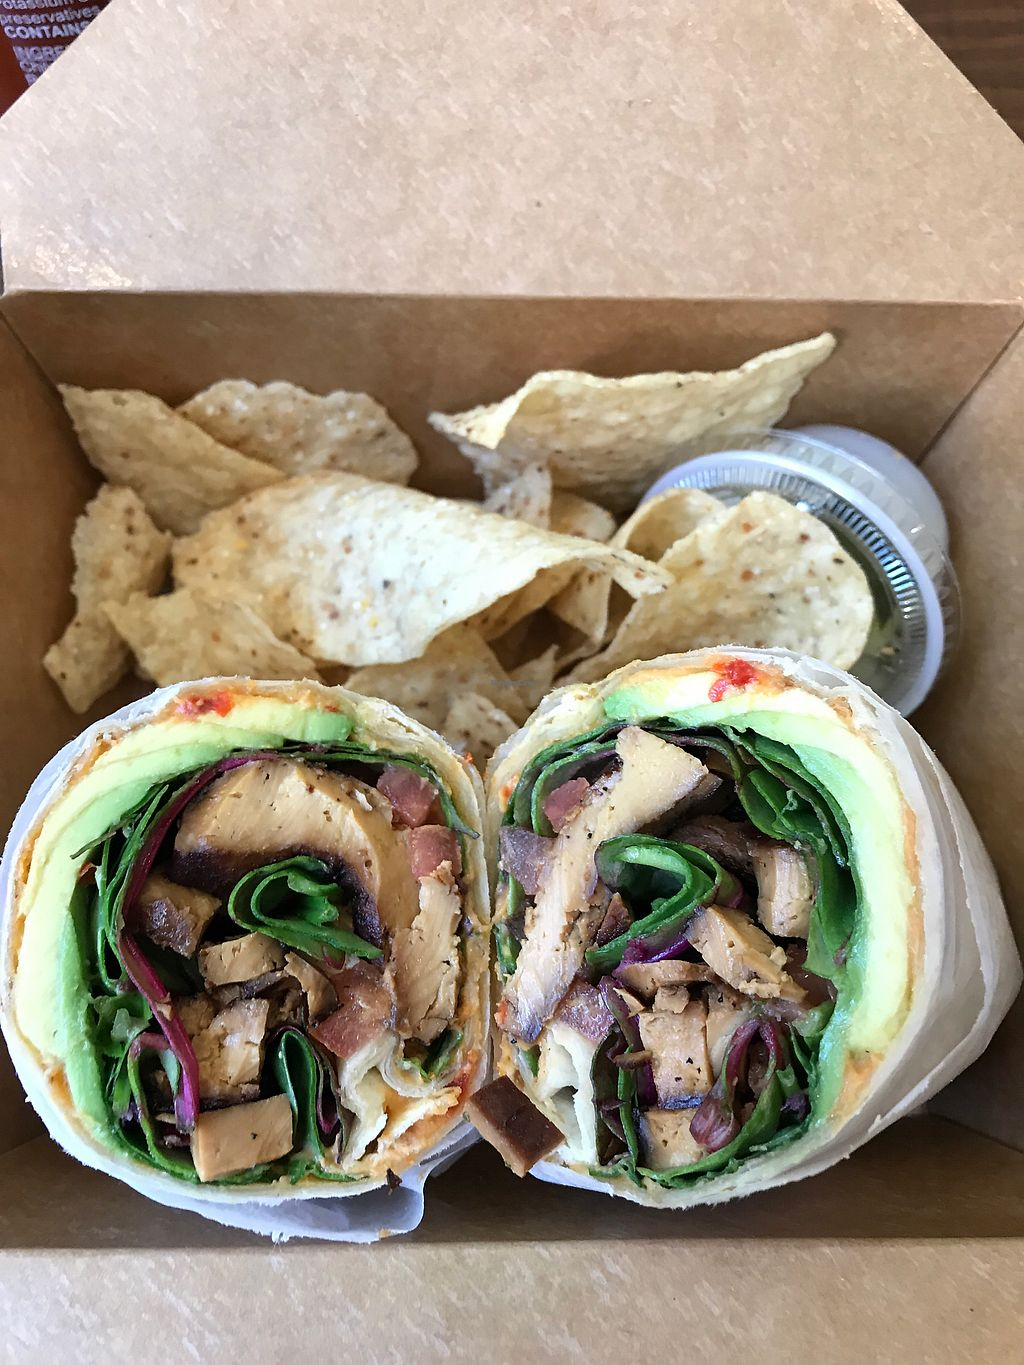 "Photo of Cafe Square One   by <a href=""/members/profile/BrittanyBeck"">BrittanyBeck</a> <br/>tofu veggie wrap <br/> March 24, 2018  - <a href='/contact/abuse/image/78286/375468'>Report</a>"